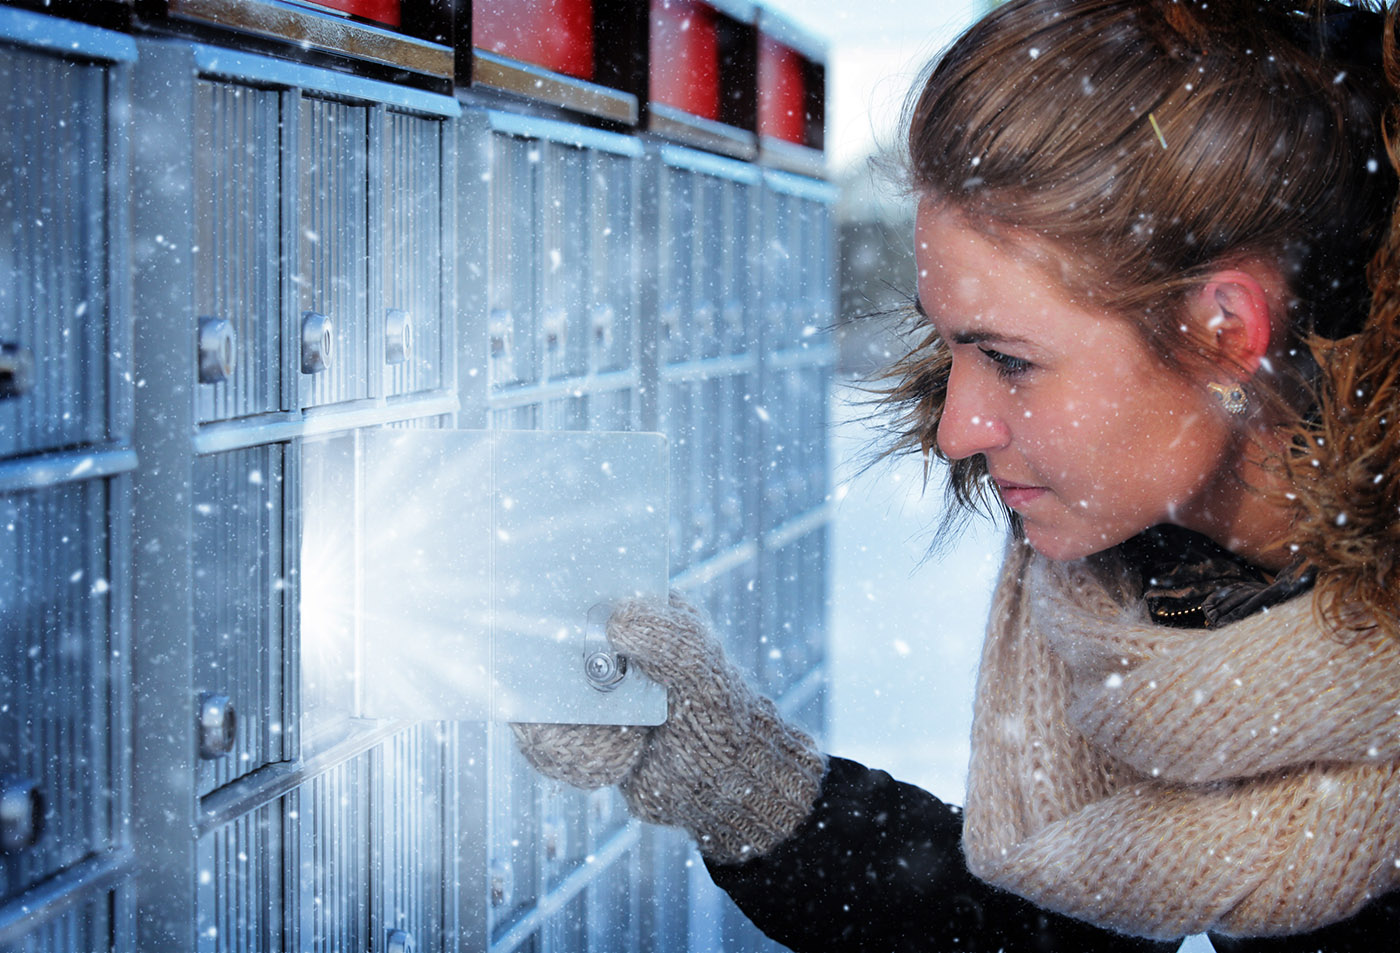 Pretty Woman Looking at Highlighted Mailbox in Winter - Stock Photo